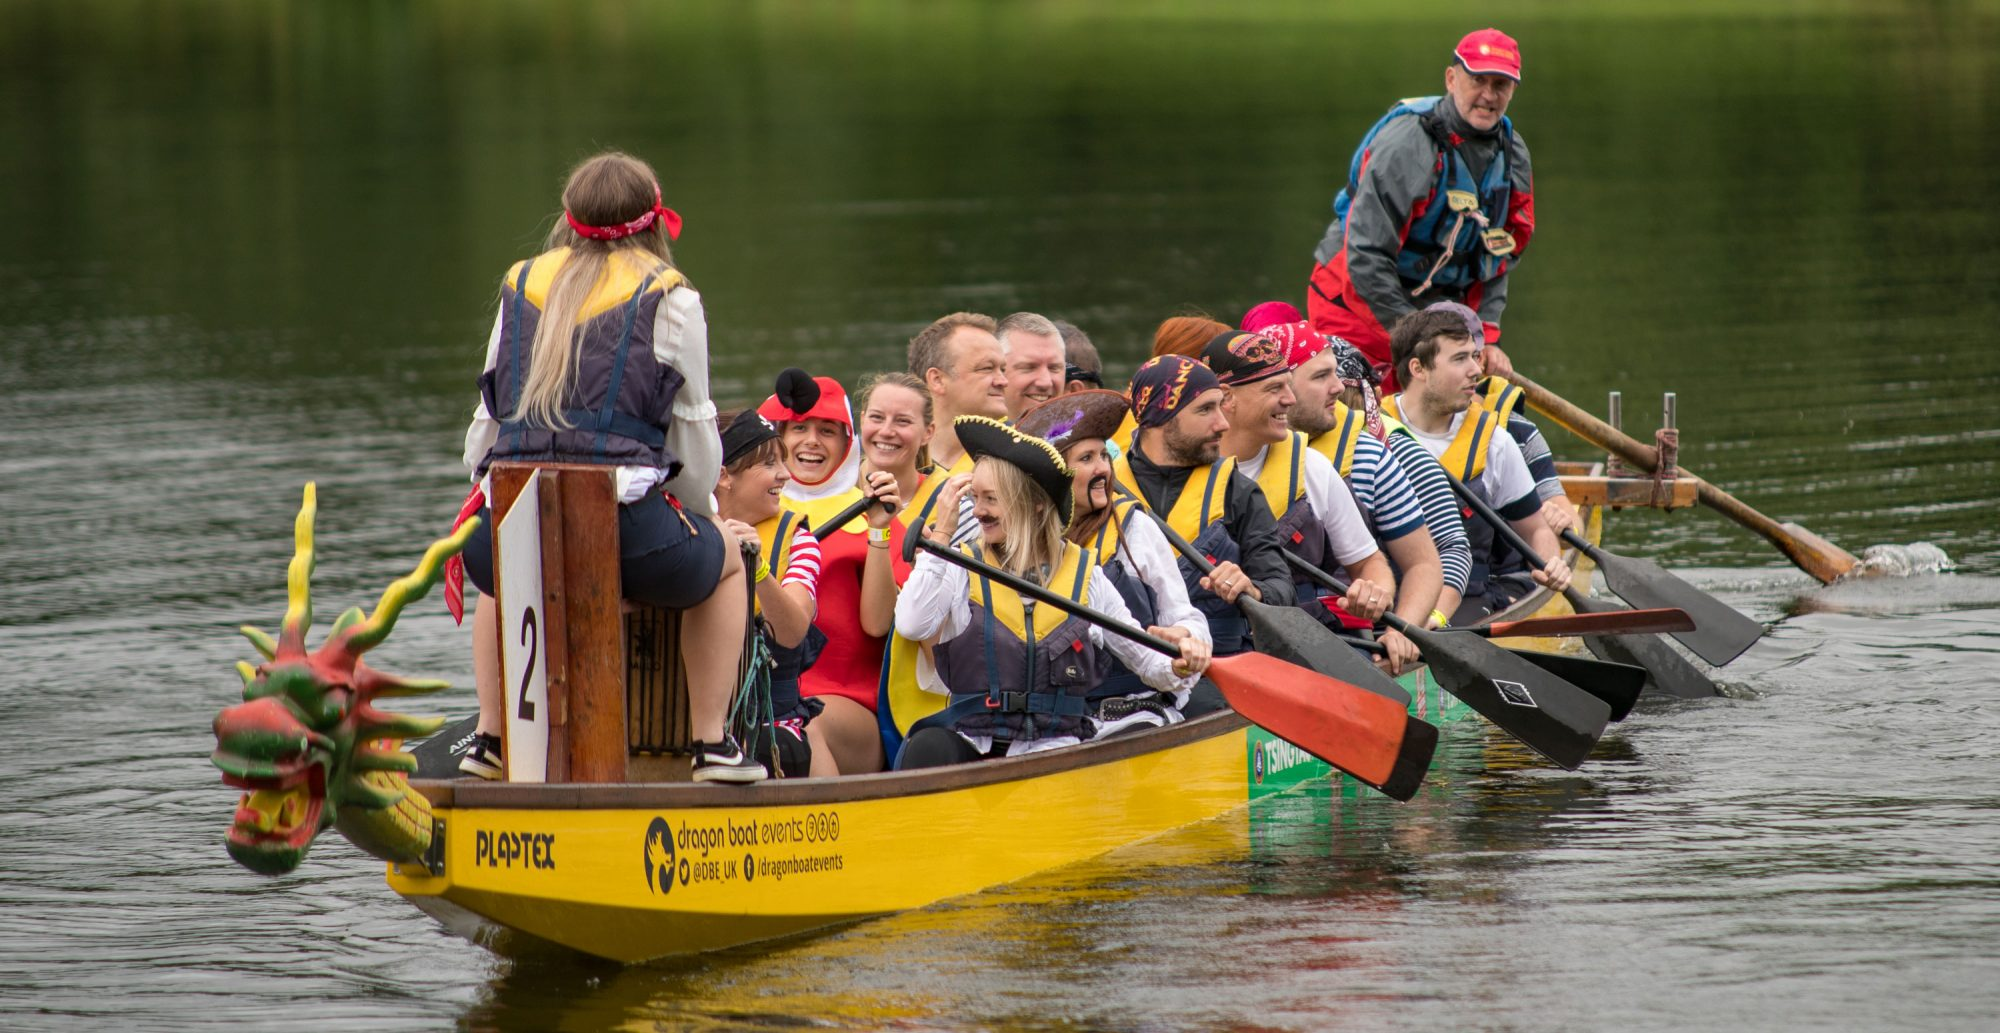 The Great Dragon Boat Race